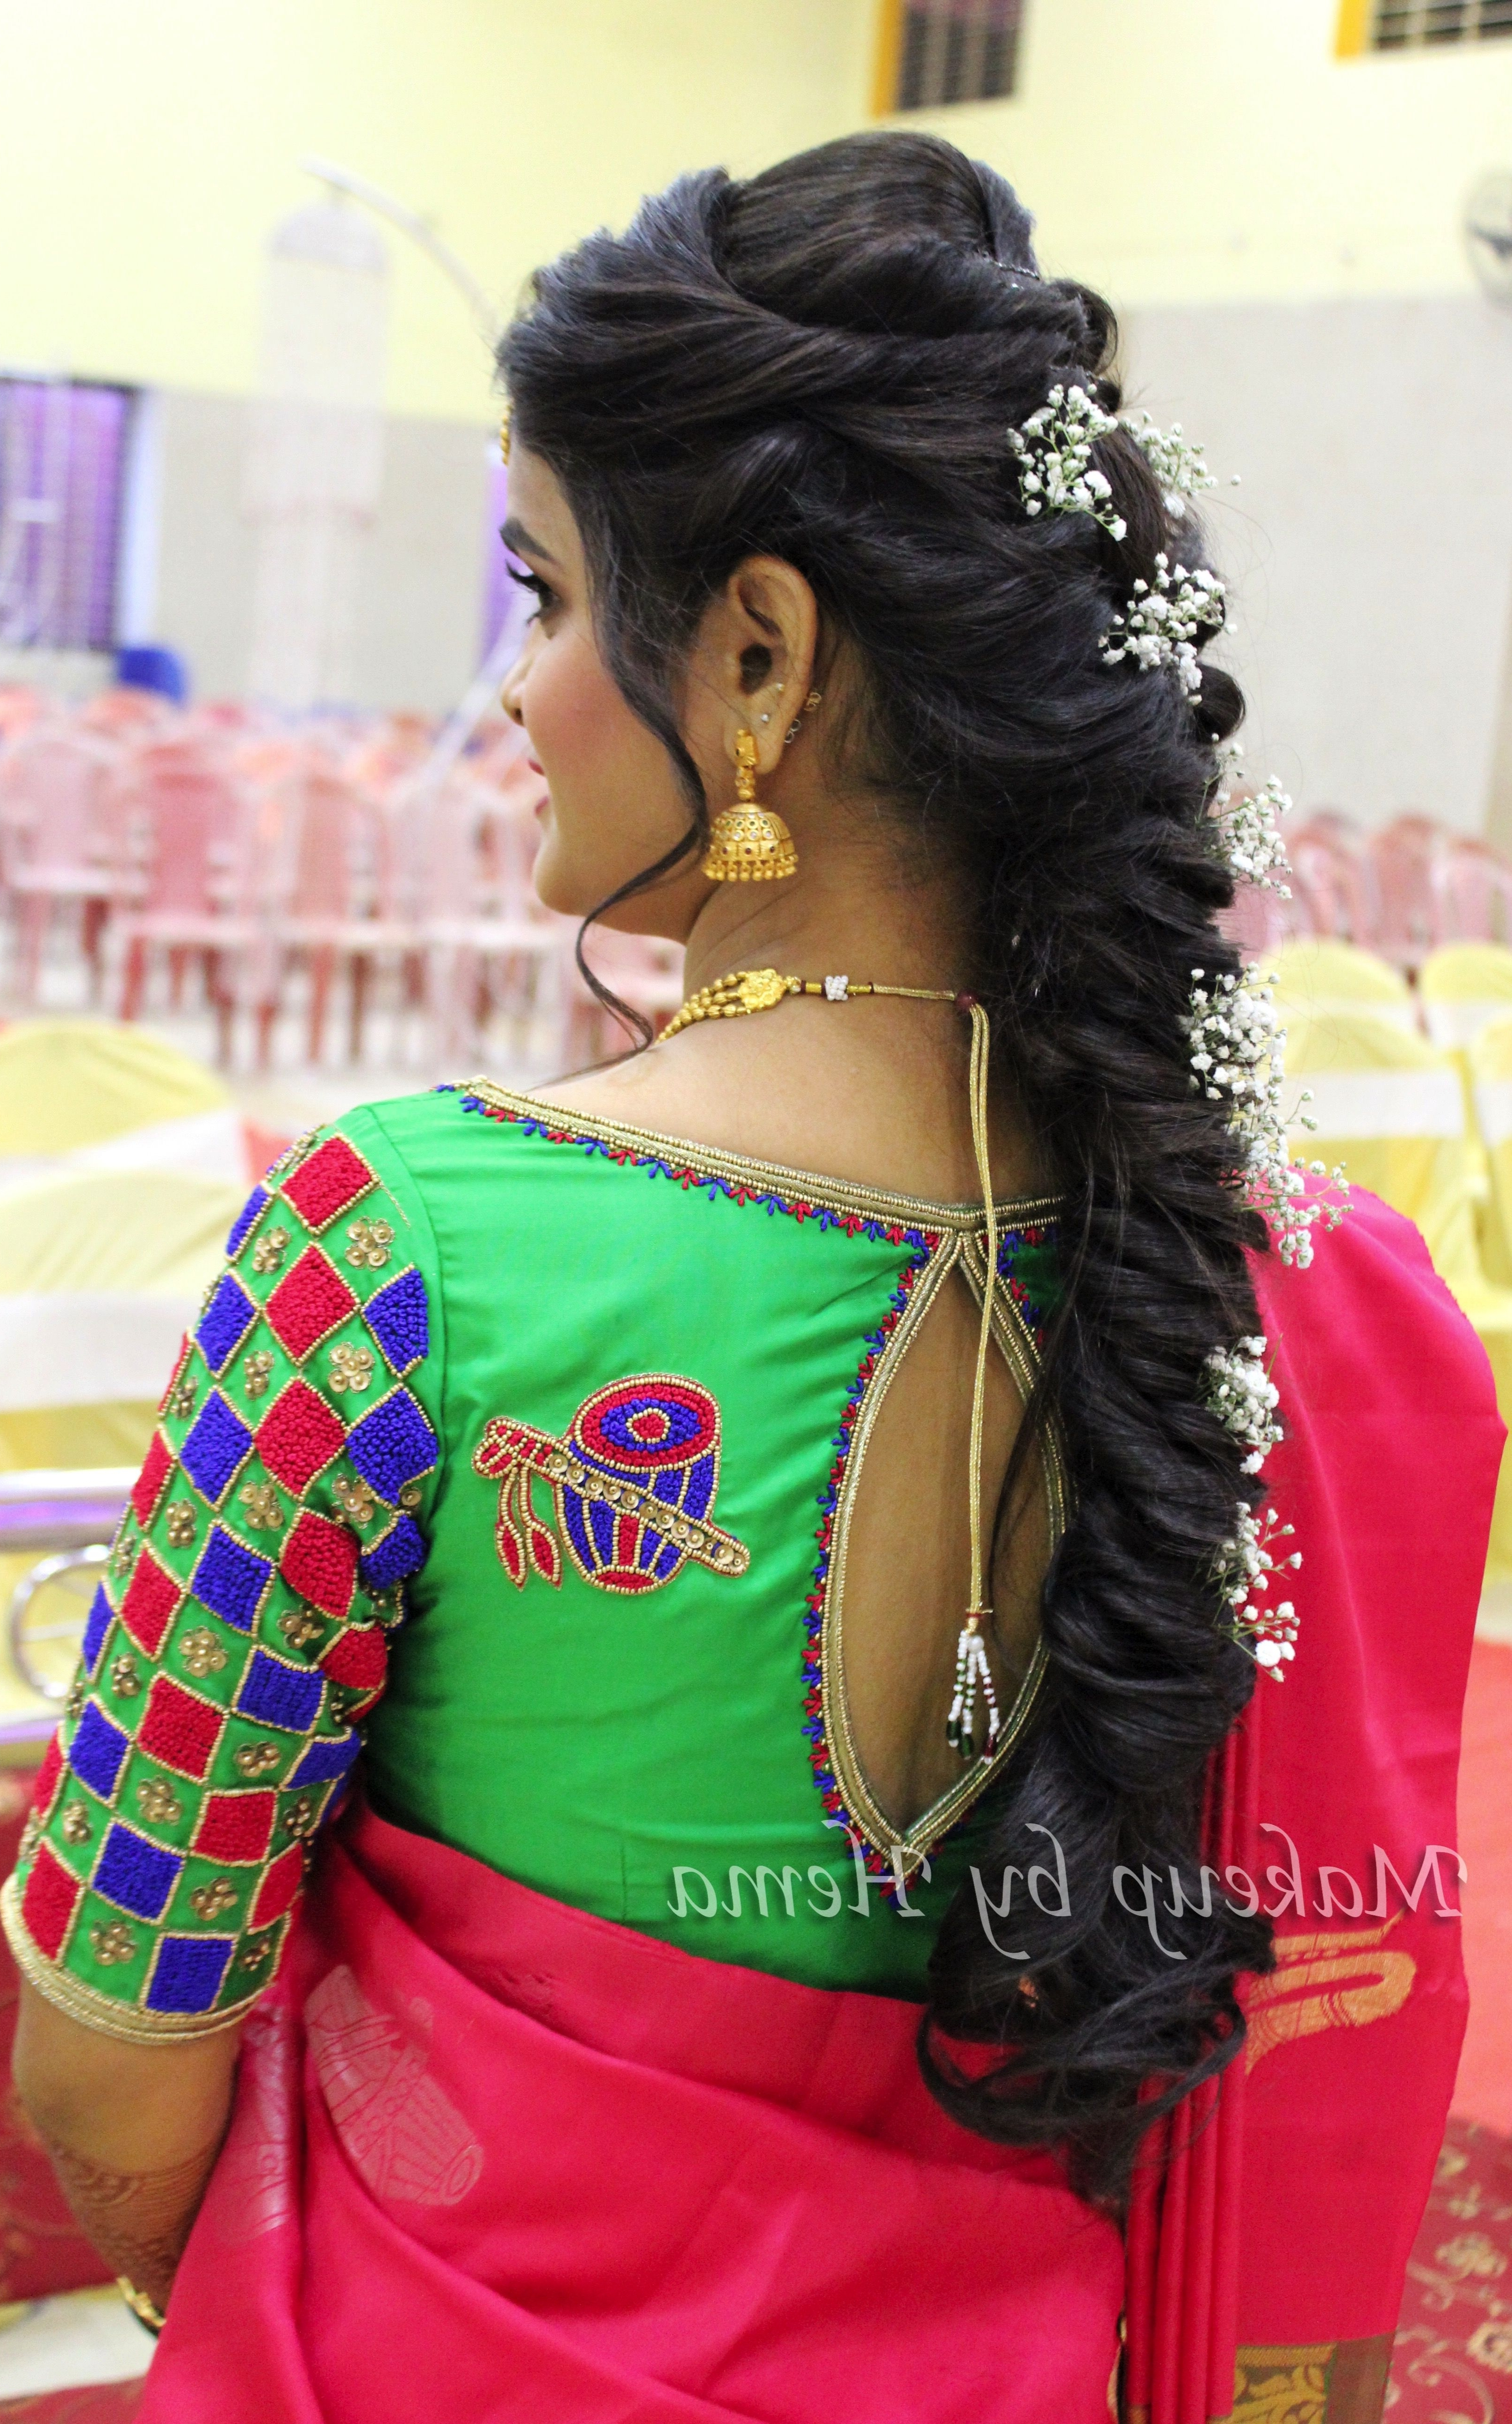 Hairstyles For Indian Wedding, Messy Braid, Bridal Braided Hairstyle Regarding 2017 Braided Hairstyles On Saree (View 8 of 15)